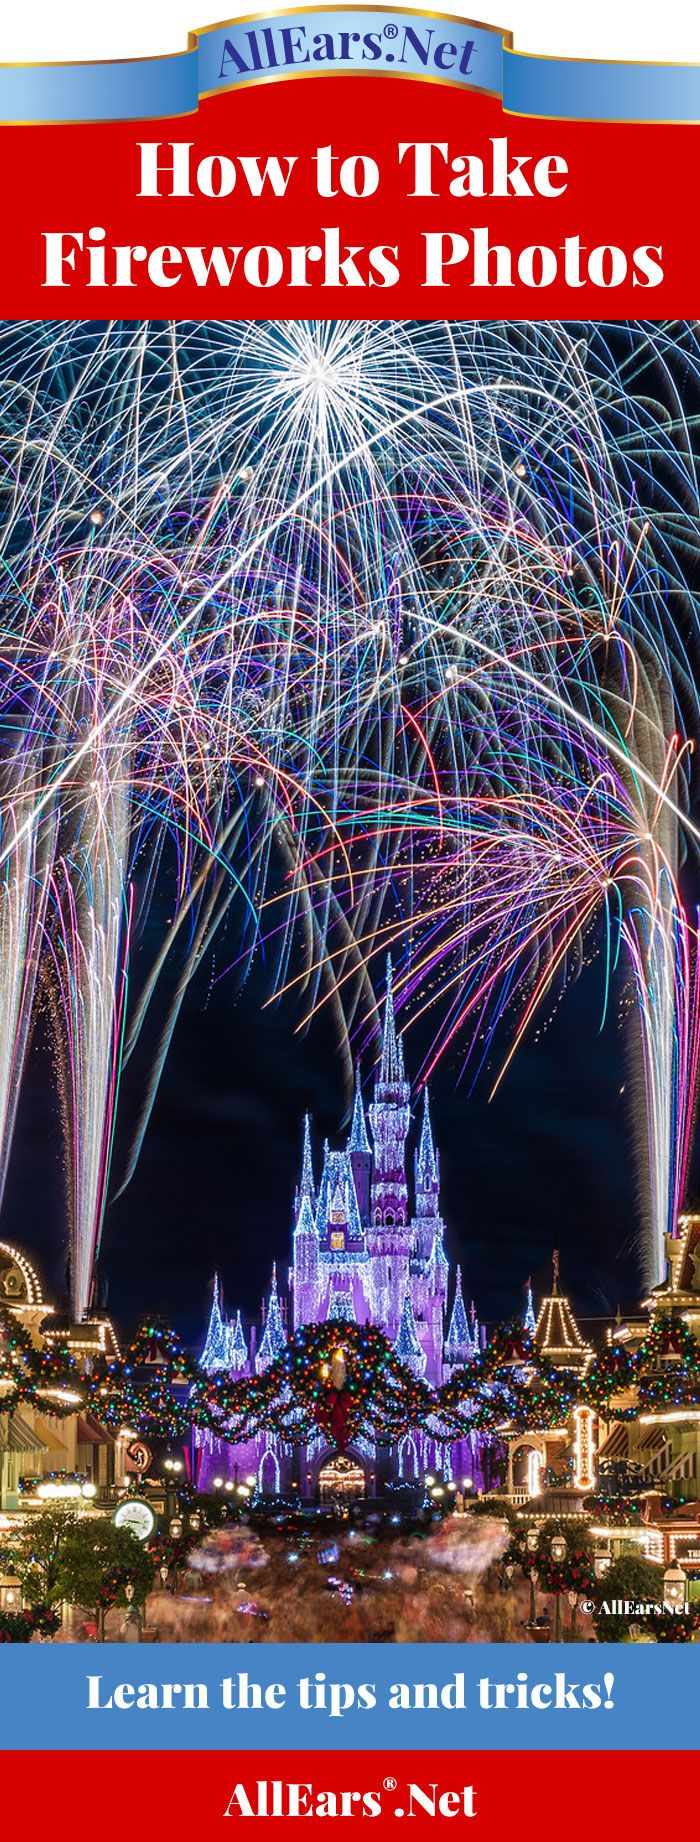 How to take amazing fireworks photos at Disney | AllEars.net | AllEars.net